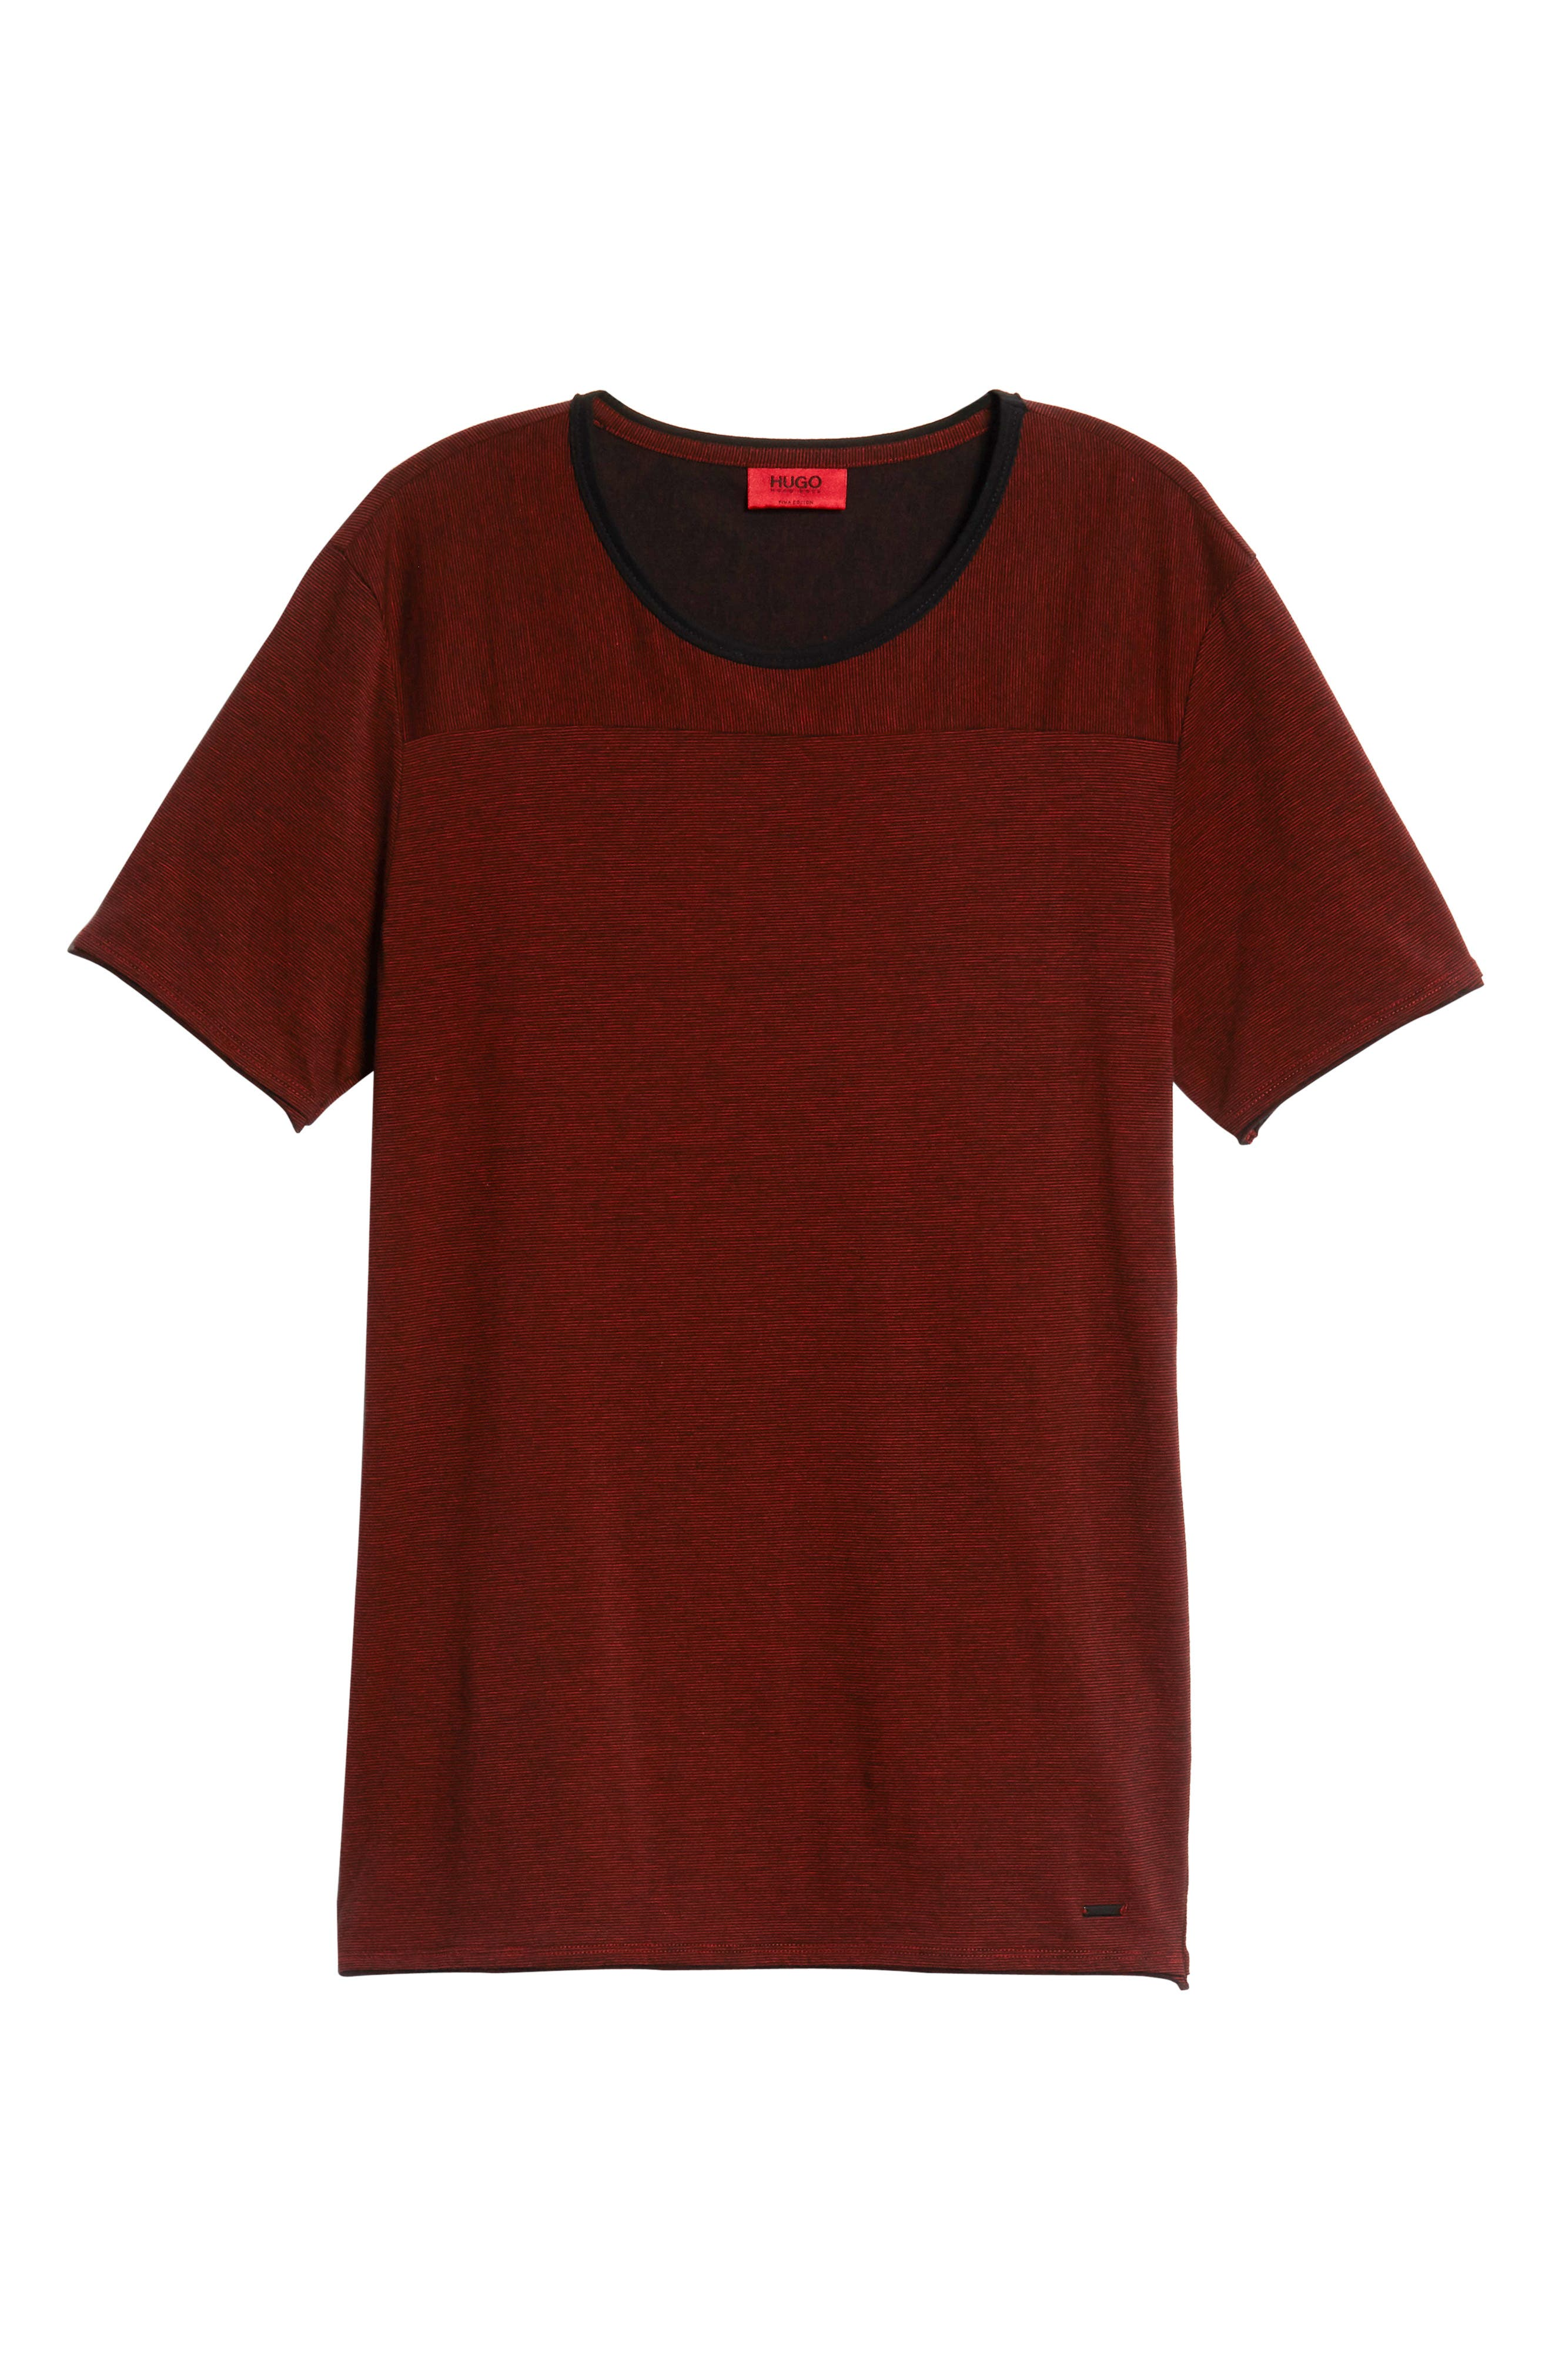 Drish Fineline Regular T-shirt,                             Alternate thumbnail 6, color,                             RED